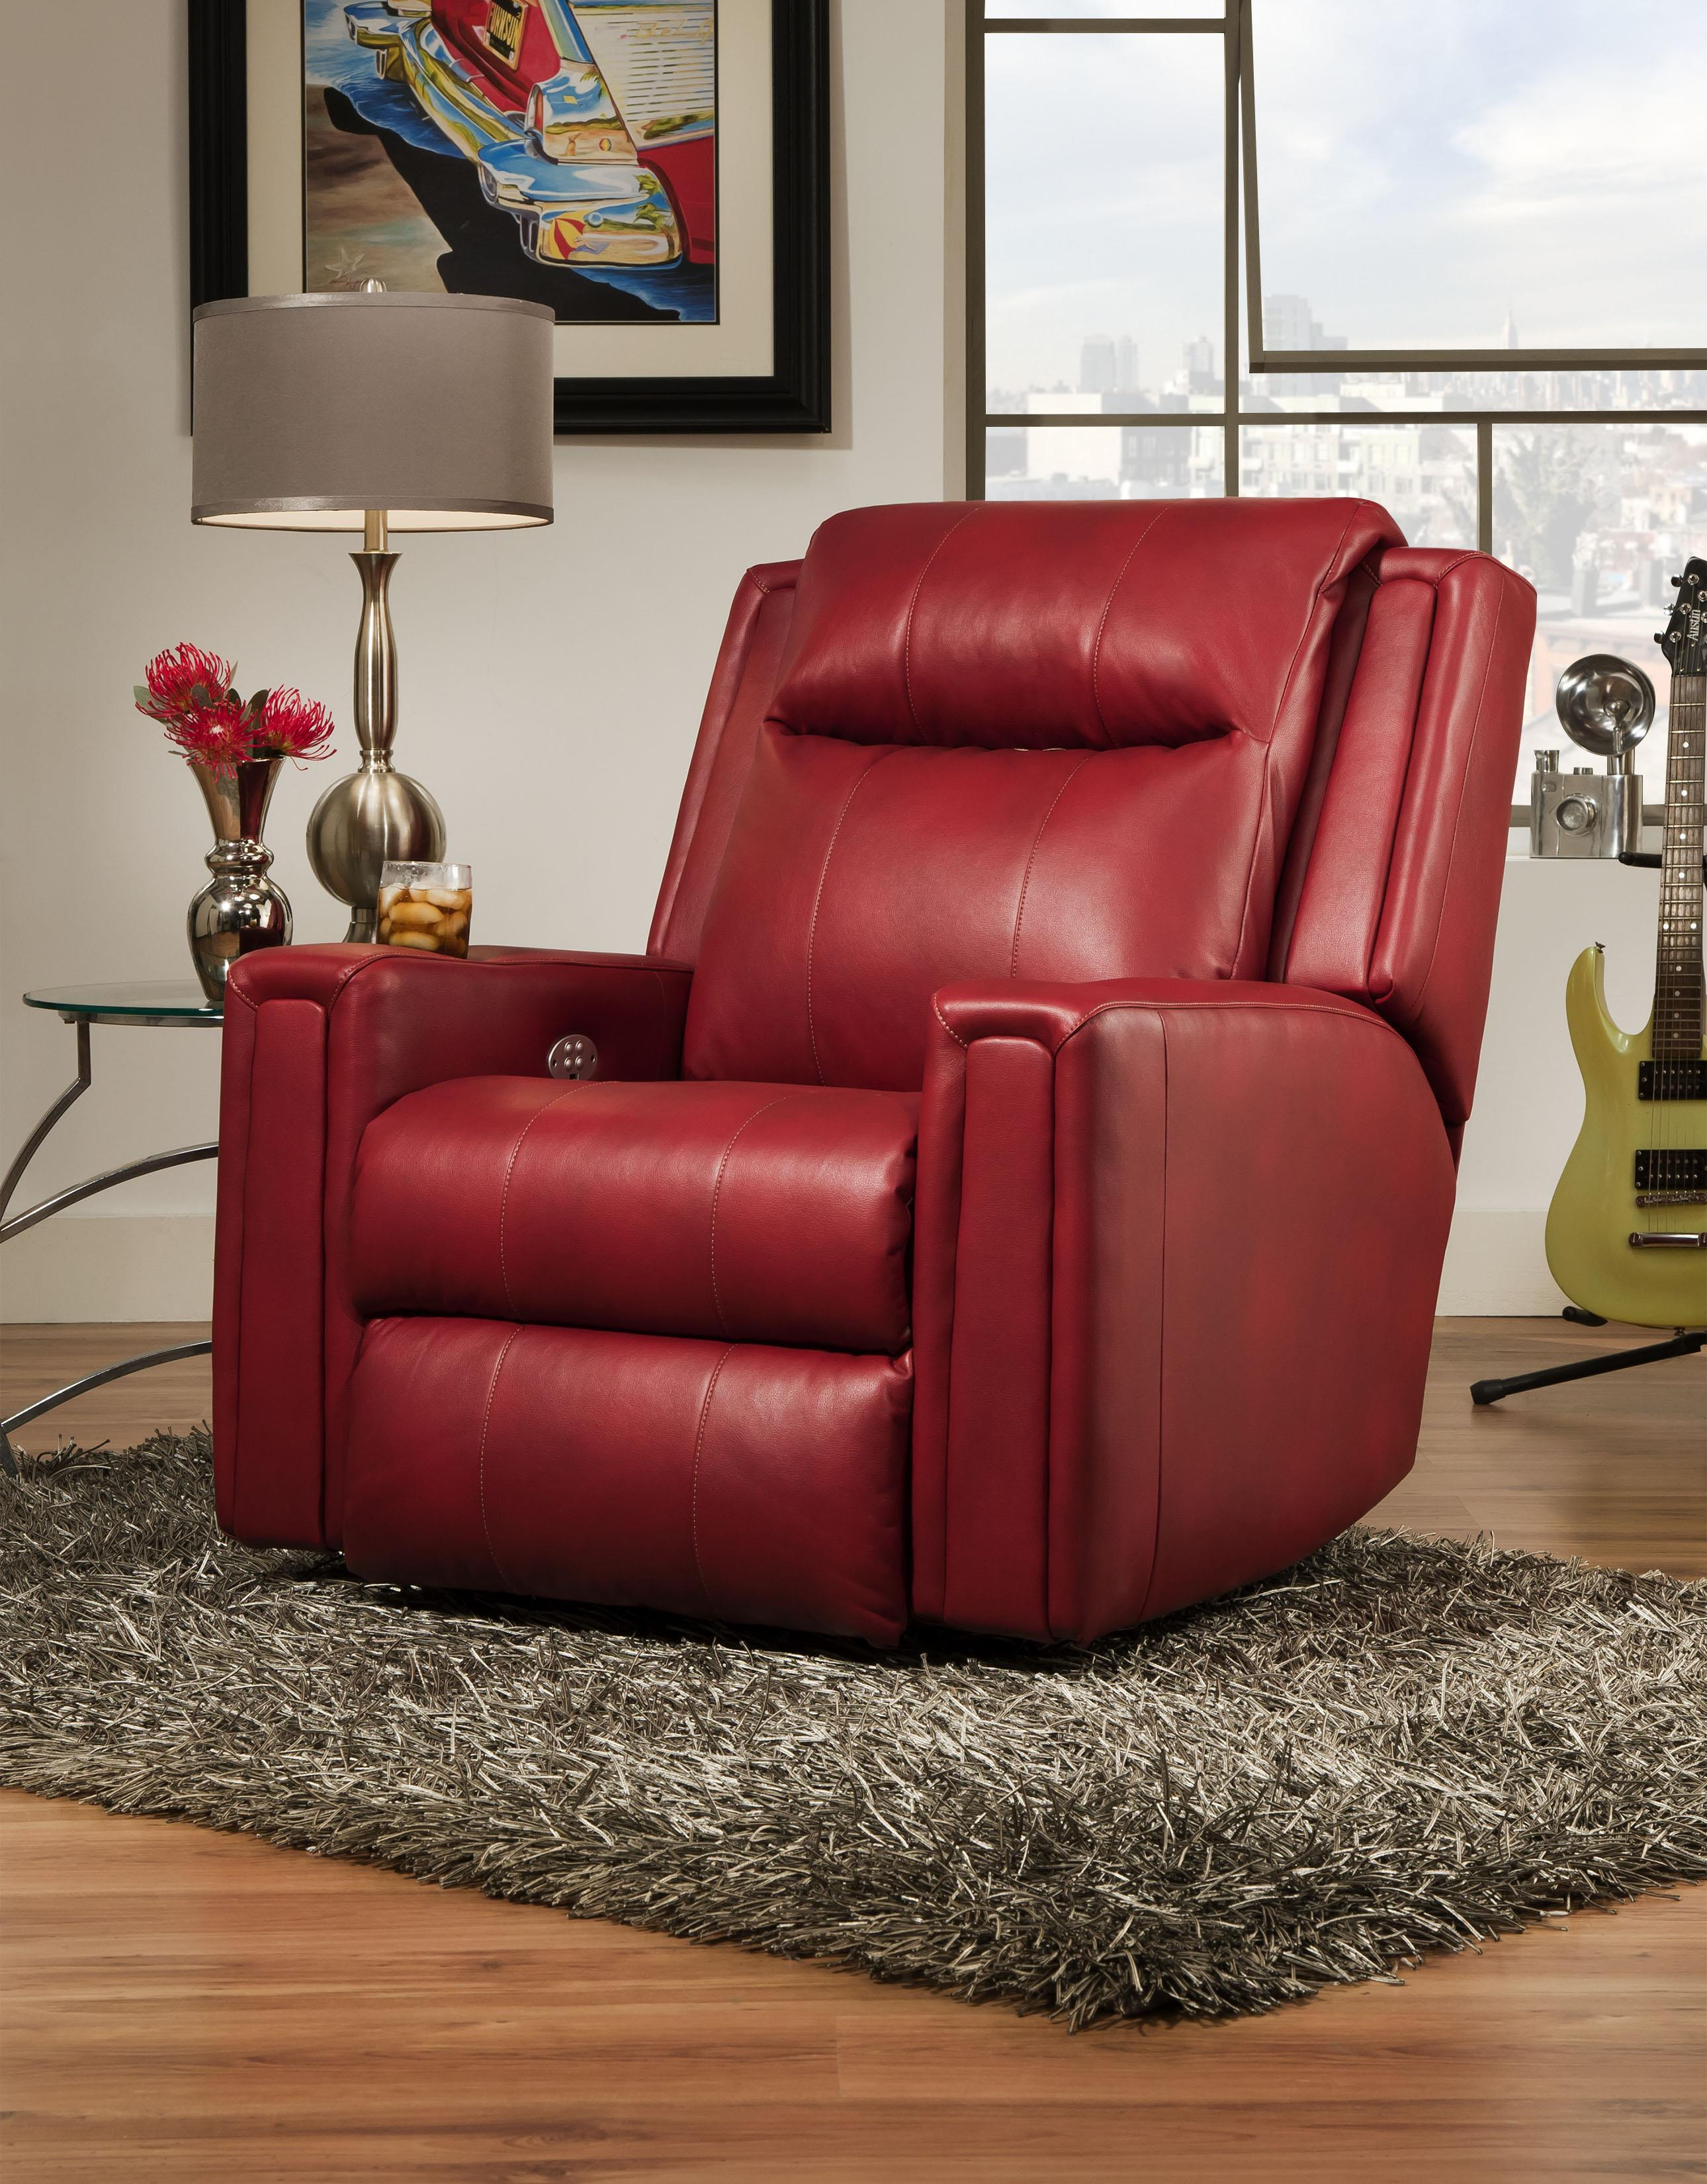 Southern Motion Curve Wall Hugger Recliner with Power Headrest - Item Number: 6858P-900-11